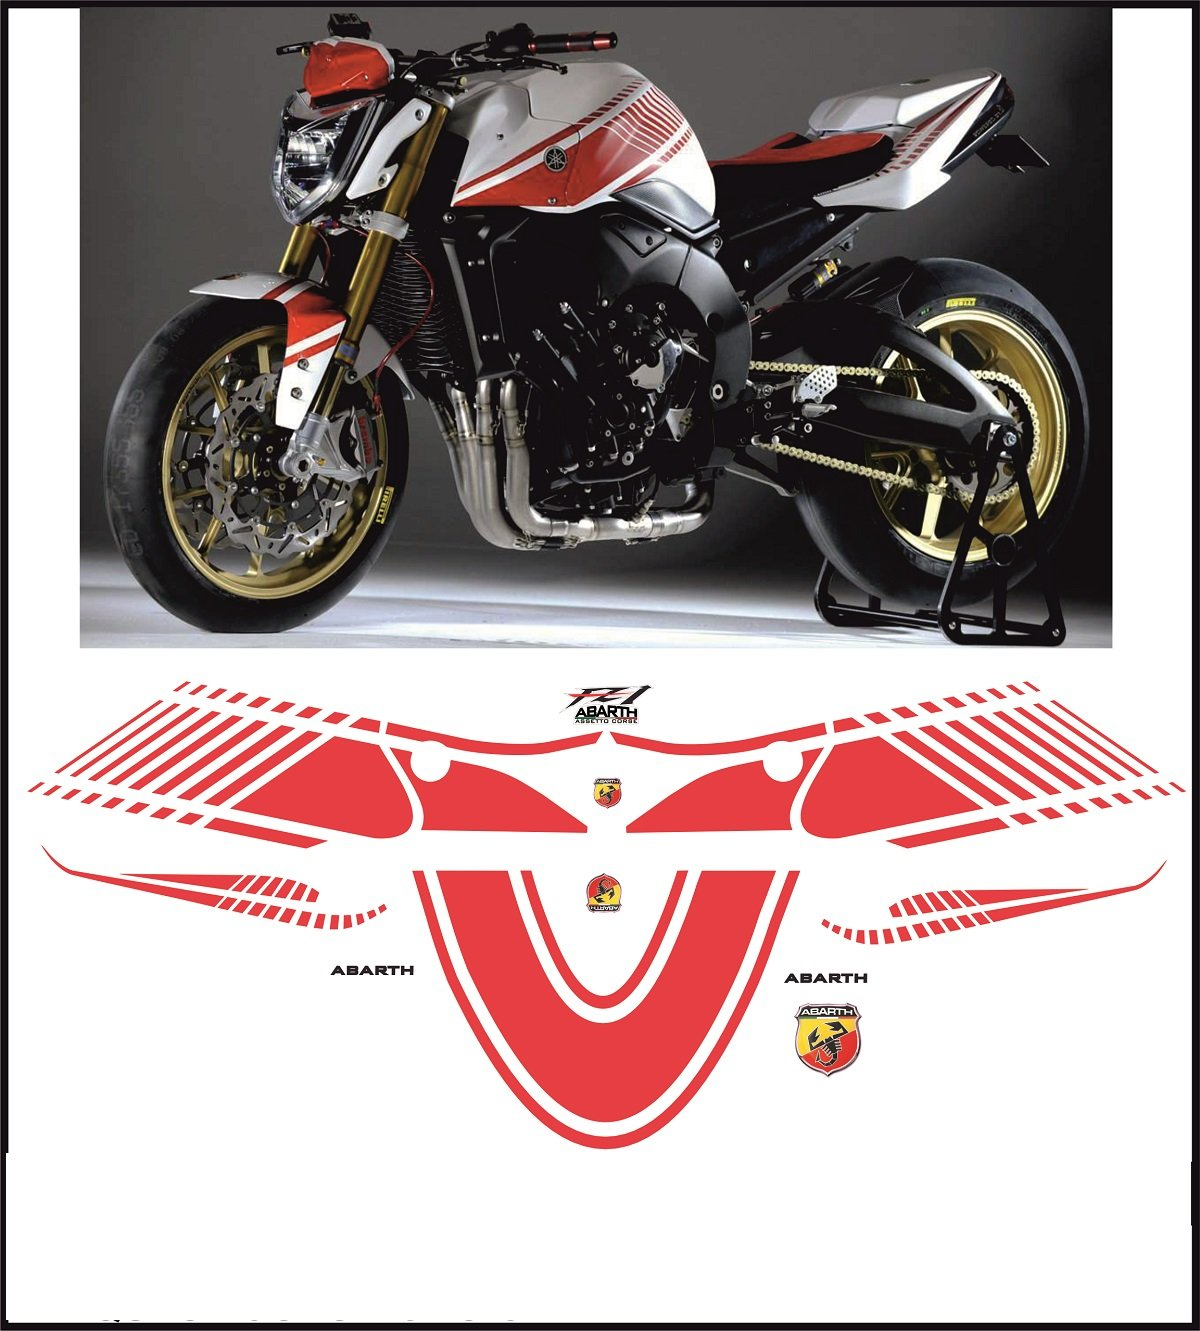 Kit adesivi decal stickers yamaha fz1 abarth ability to customize the colors amazon ca automotive